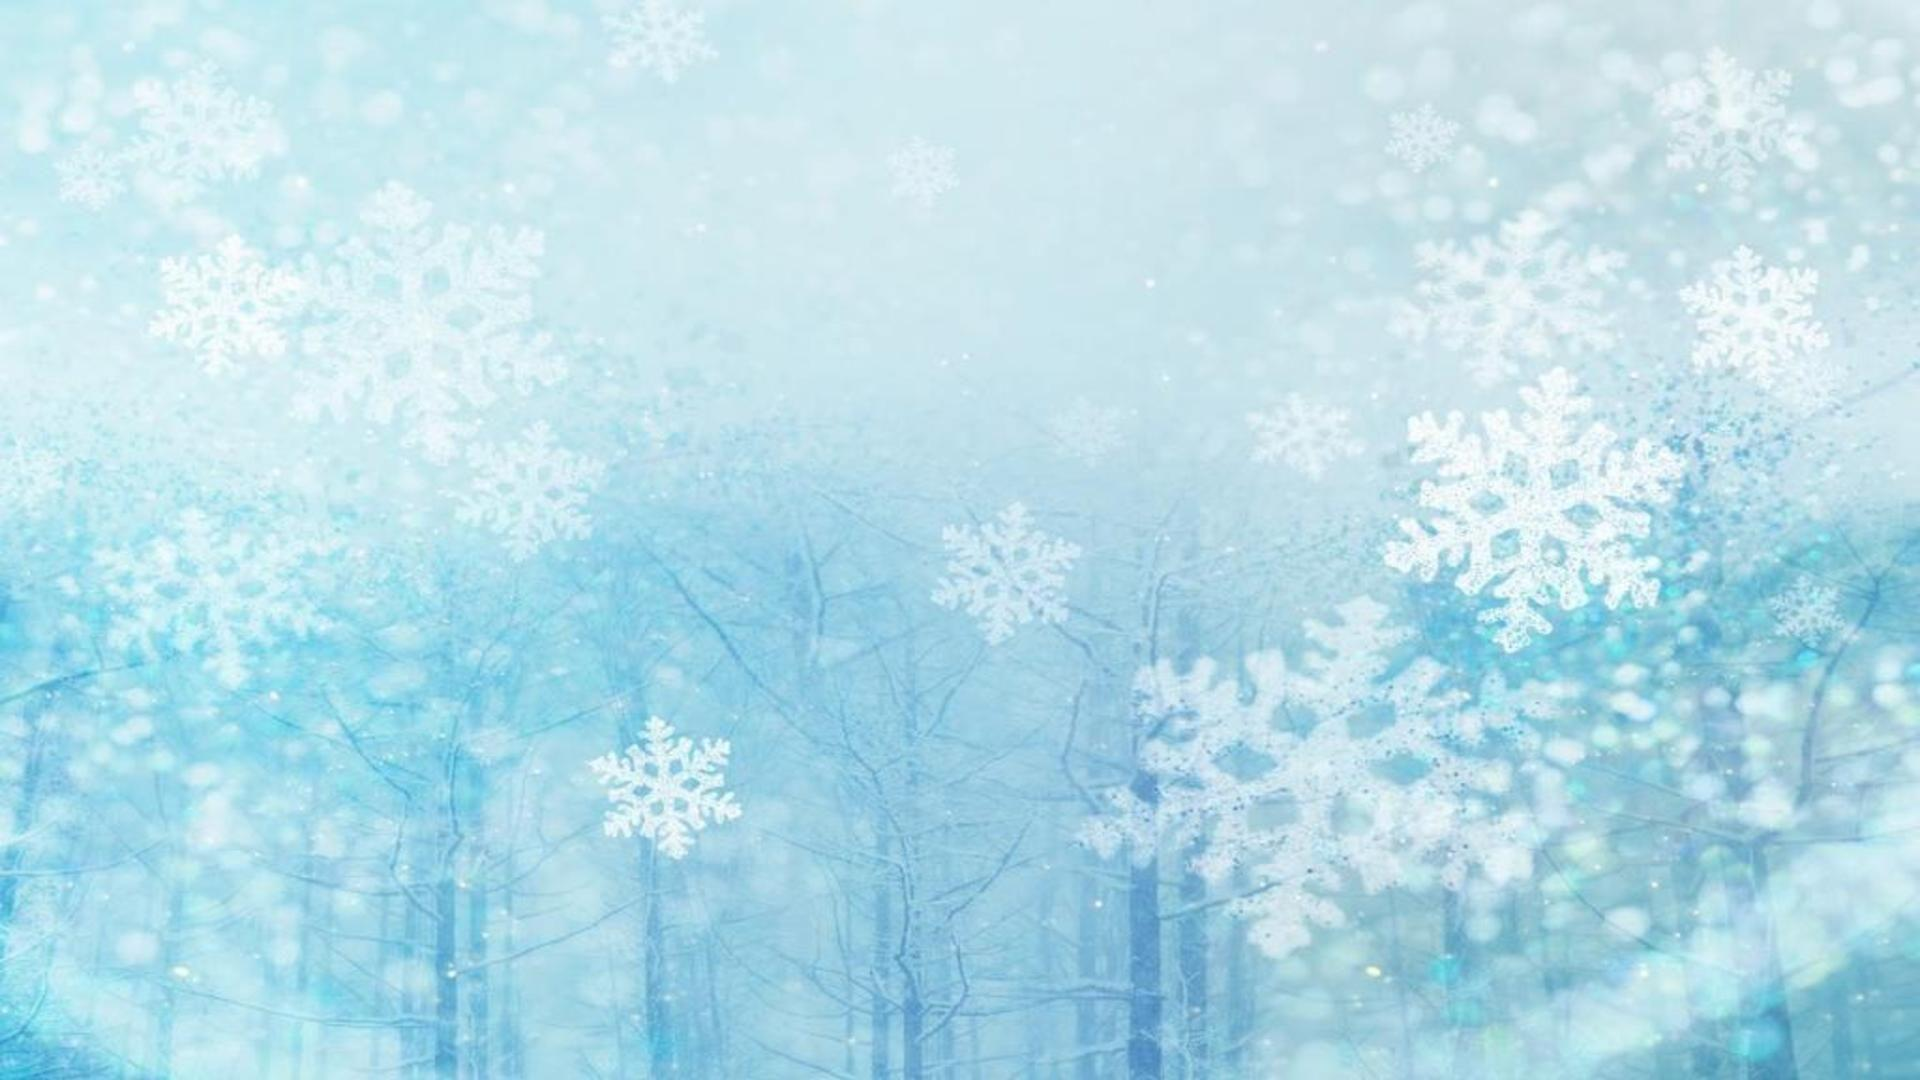 Snow Backgrounds 1920x1080